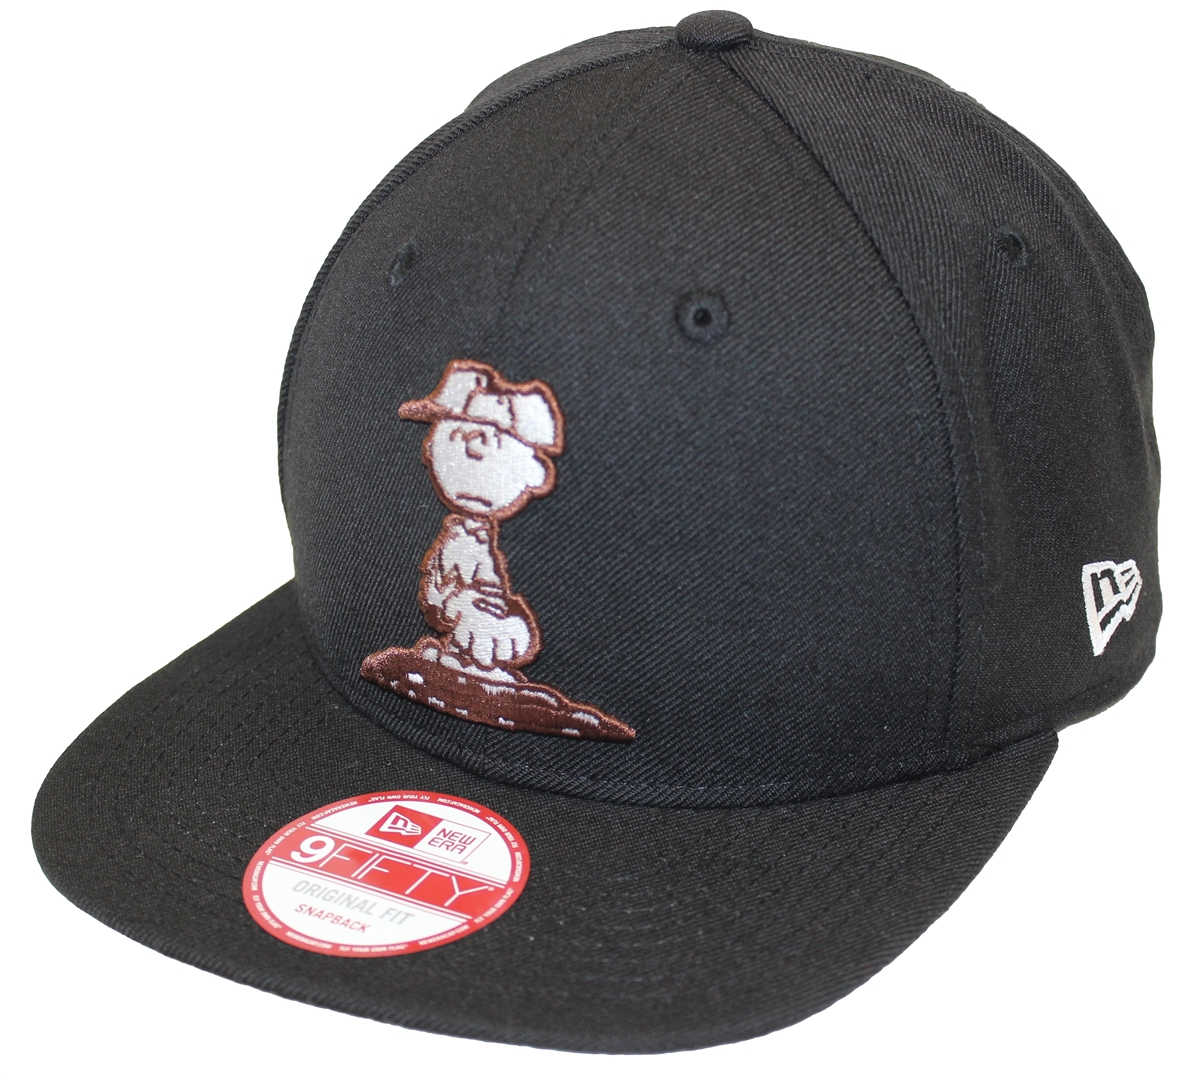 f6f33c00 New Era 9Fifty Peanuts Charlie Brown Pitcher Black Snapback T4H EXCLUSIVE